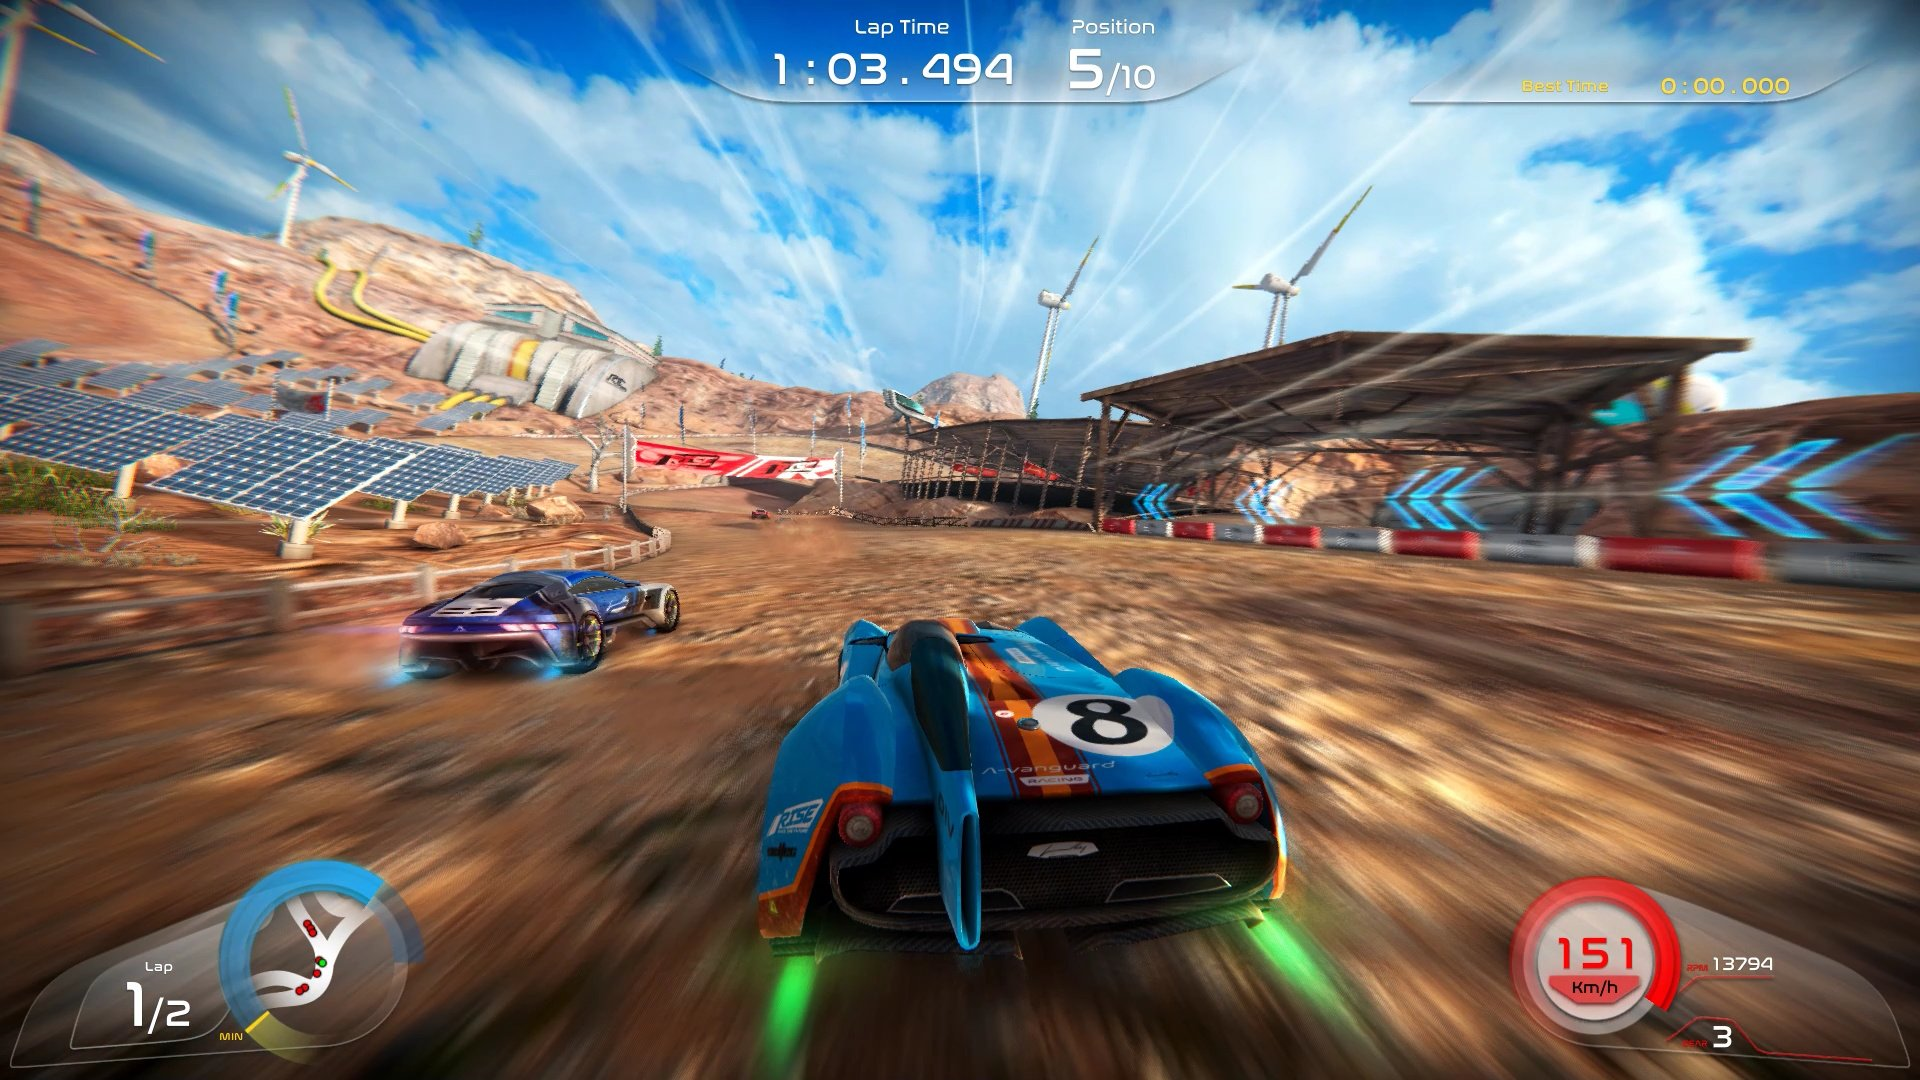 Arcade Racer Rise: Race The Future Speeds Onto Switch This Month